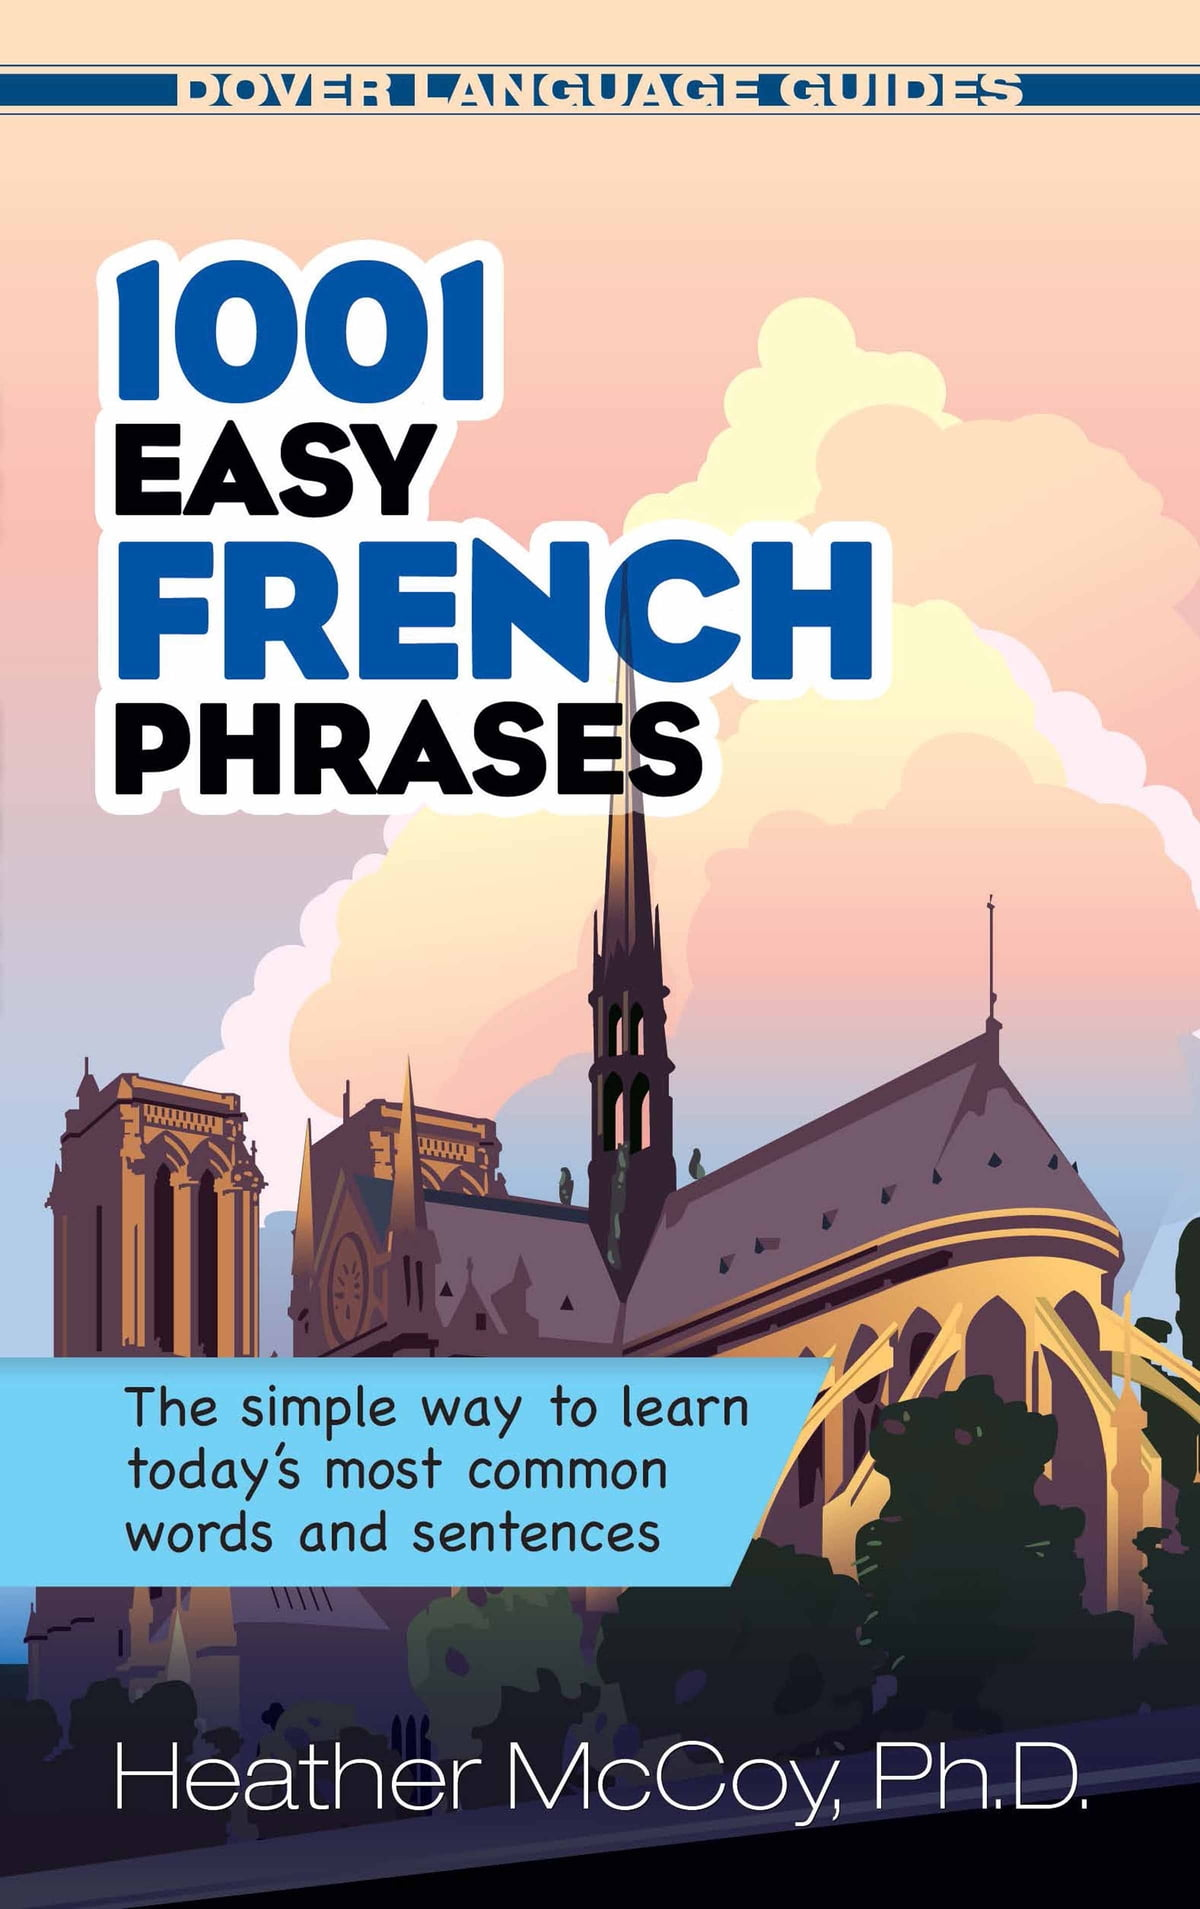 1001 Easy French Phrases eBook by Heather McCoy - 9780486114026 | Rakuten  Kobo